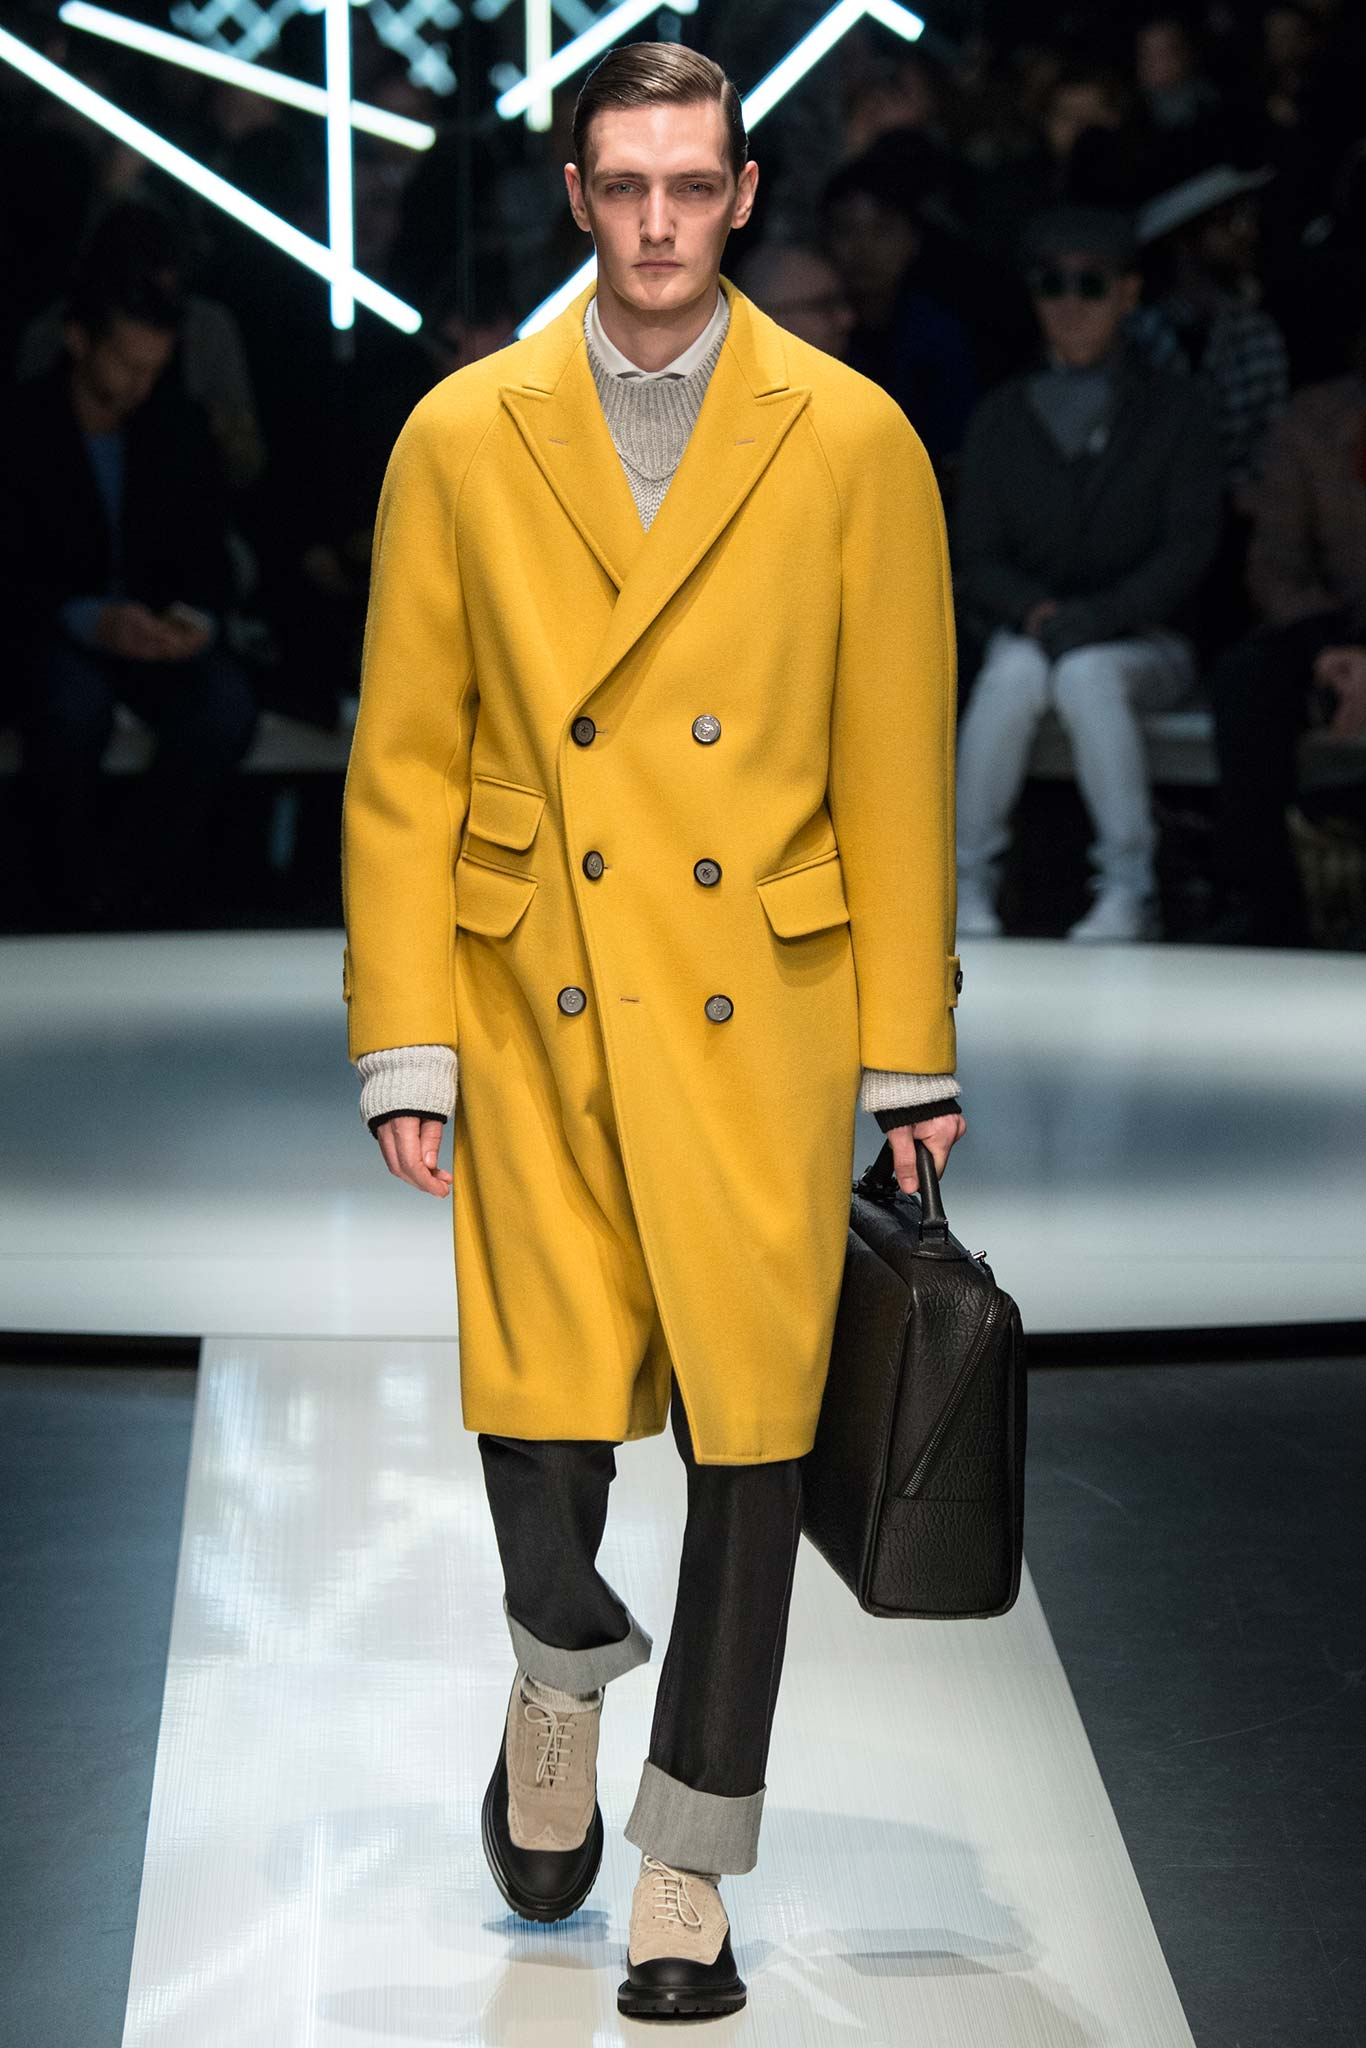 Canali Autumn/Winter 2015 Collection